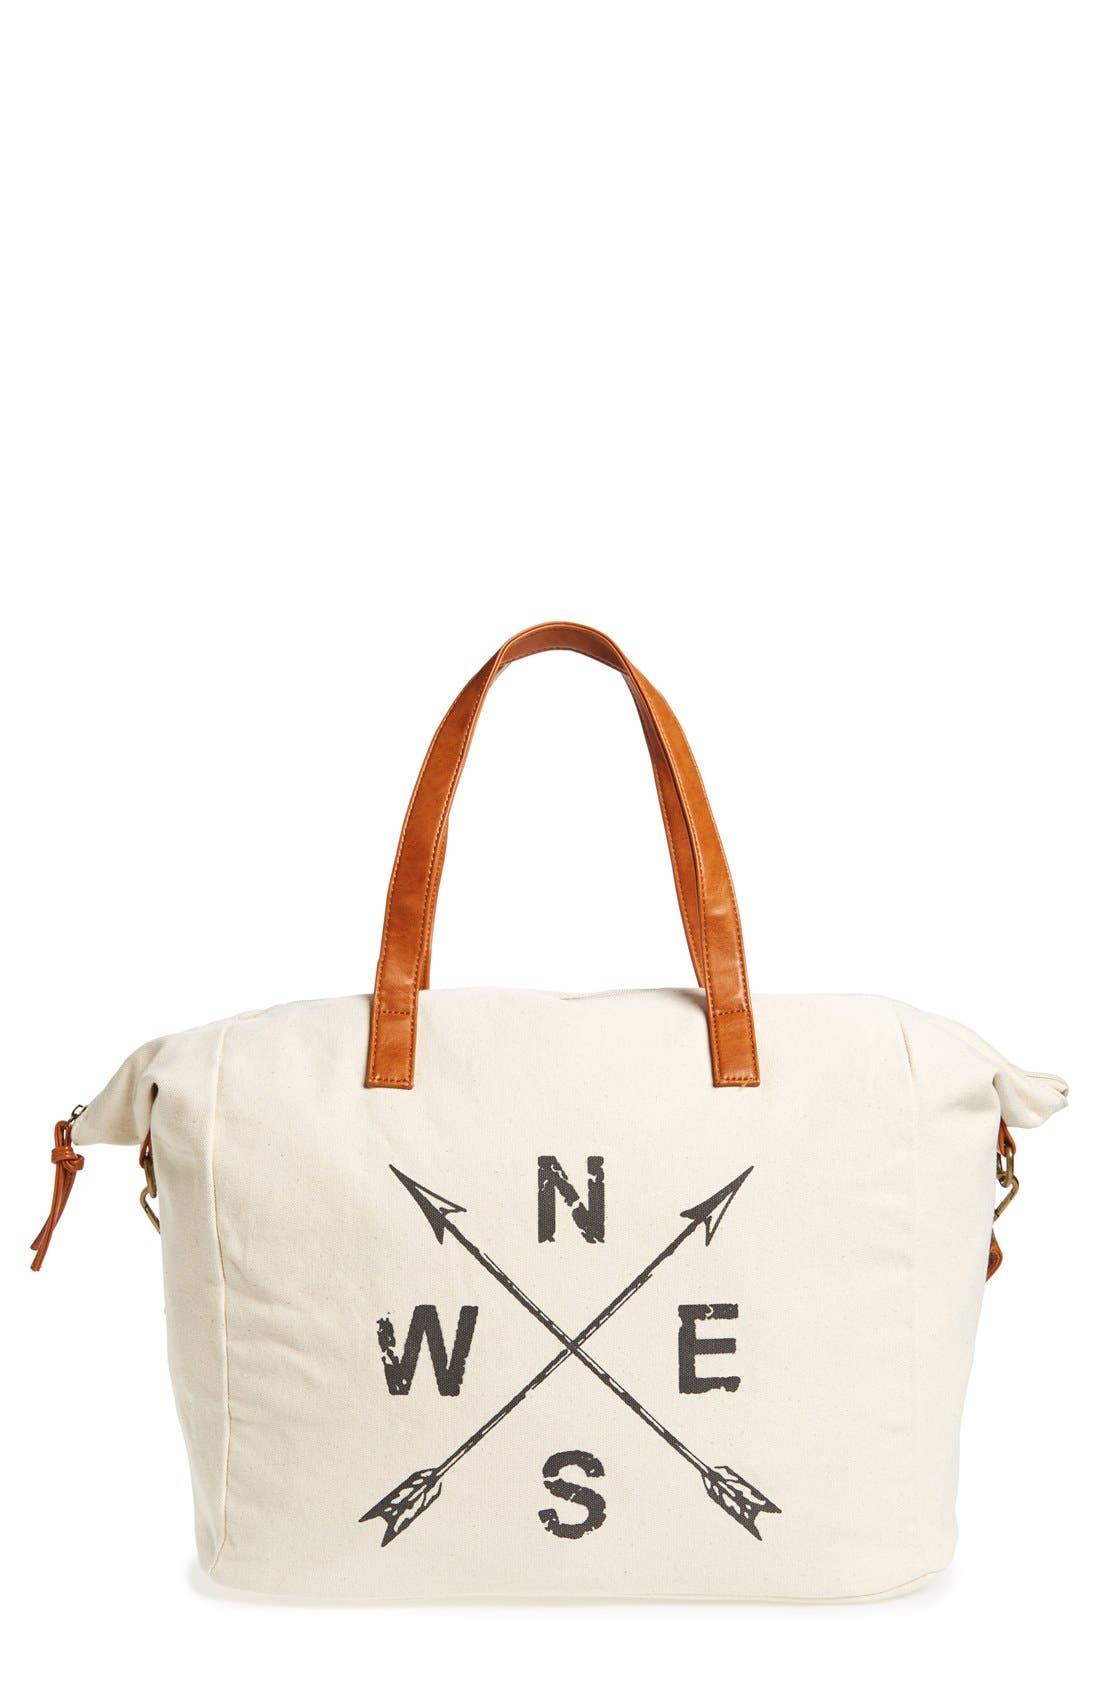 NU-G Slouchy Canvas Overnighter Bag, Main, color, 200